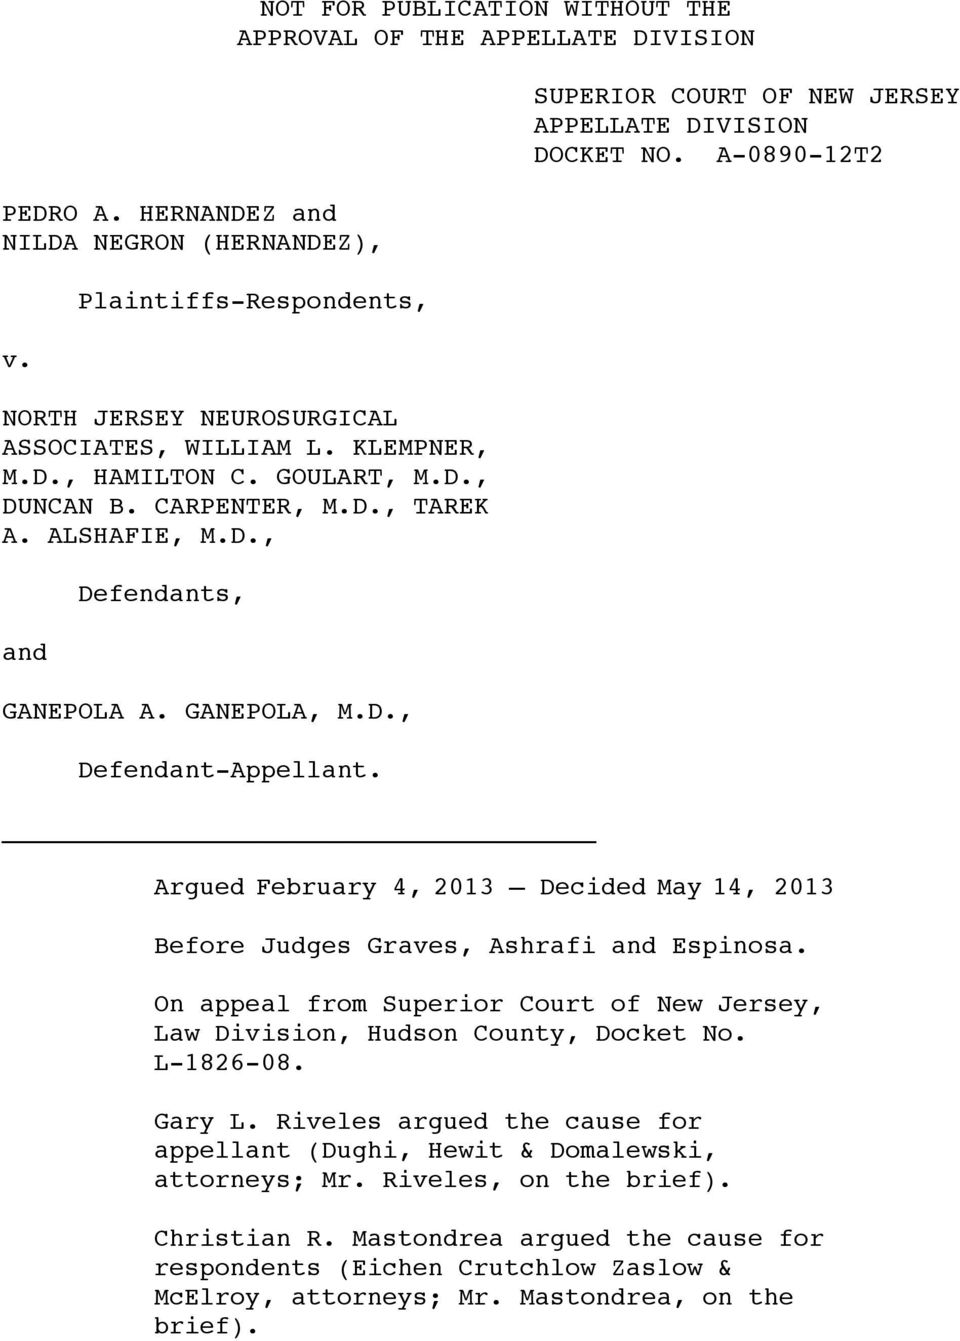 SUPERIOR COURT OF NEW JERSEY APPELLATE DIVISION DOCKET NO. Argued February 4, 2013 Decided May 14, 2013 Before Judges Graves, Ashrafi and Espinosa.